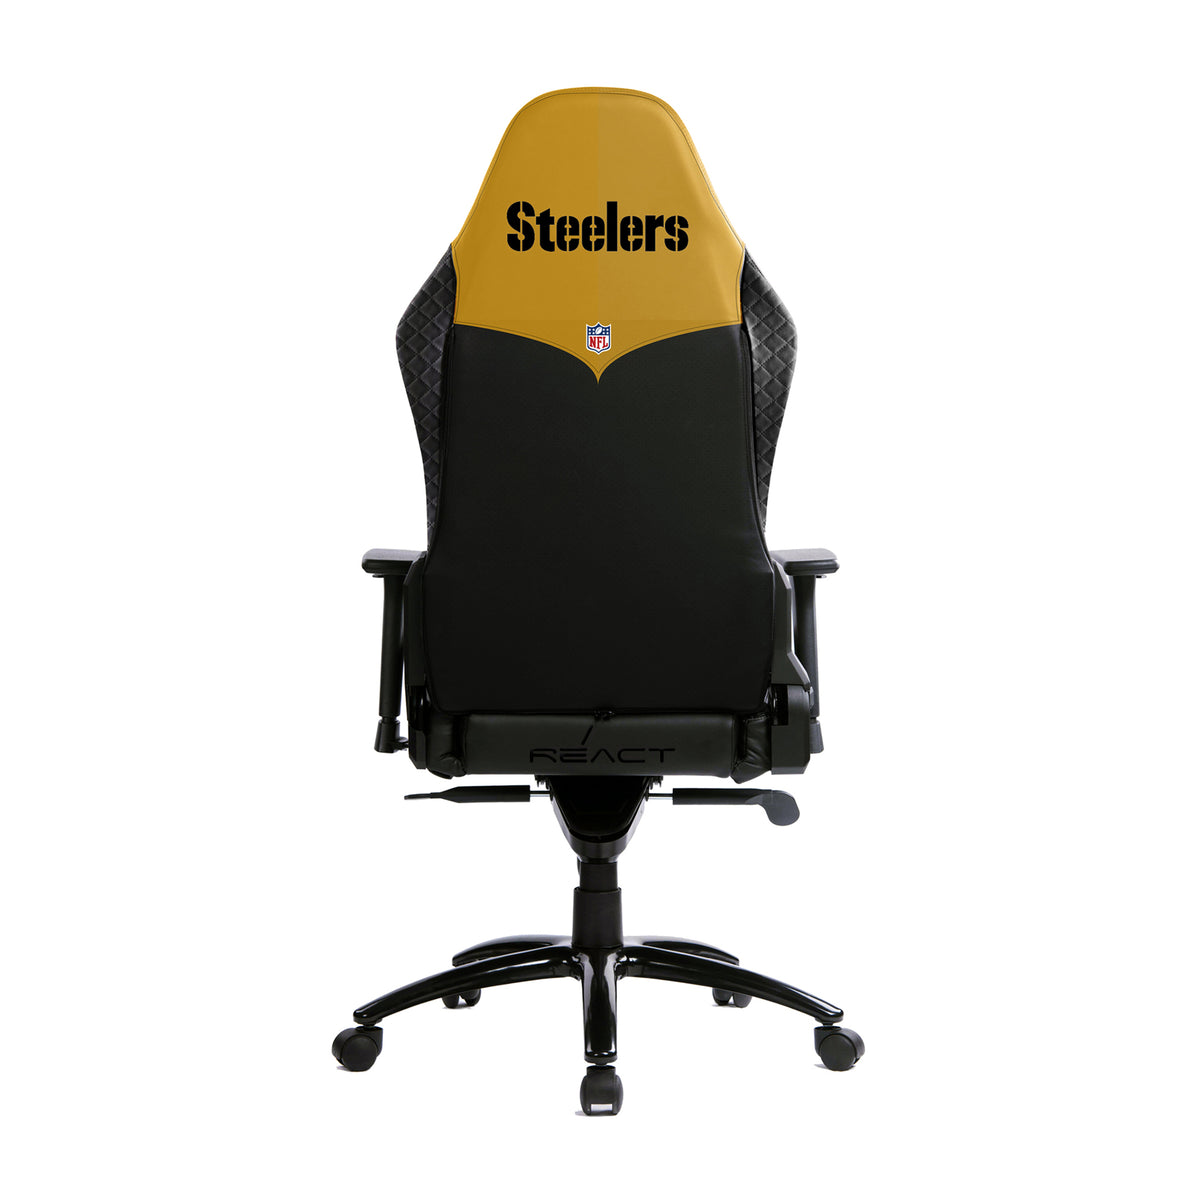 Pittsburgh Steelers Pro Series Gaming Chair